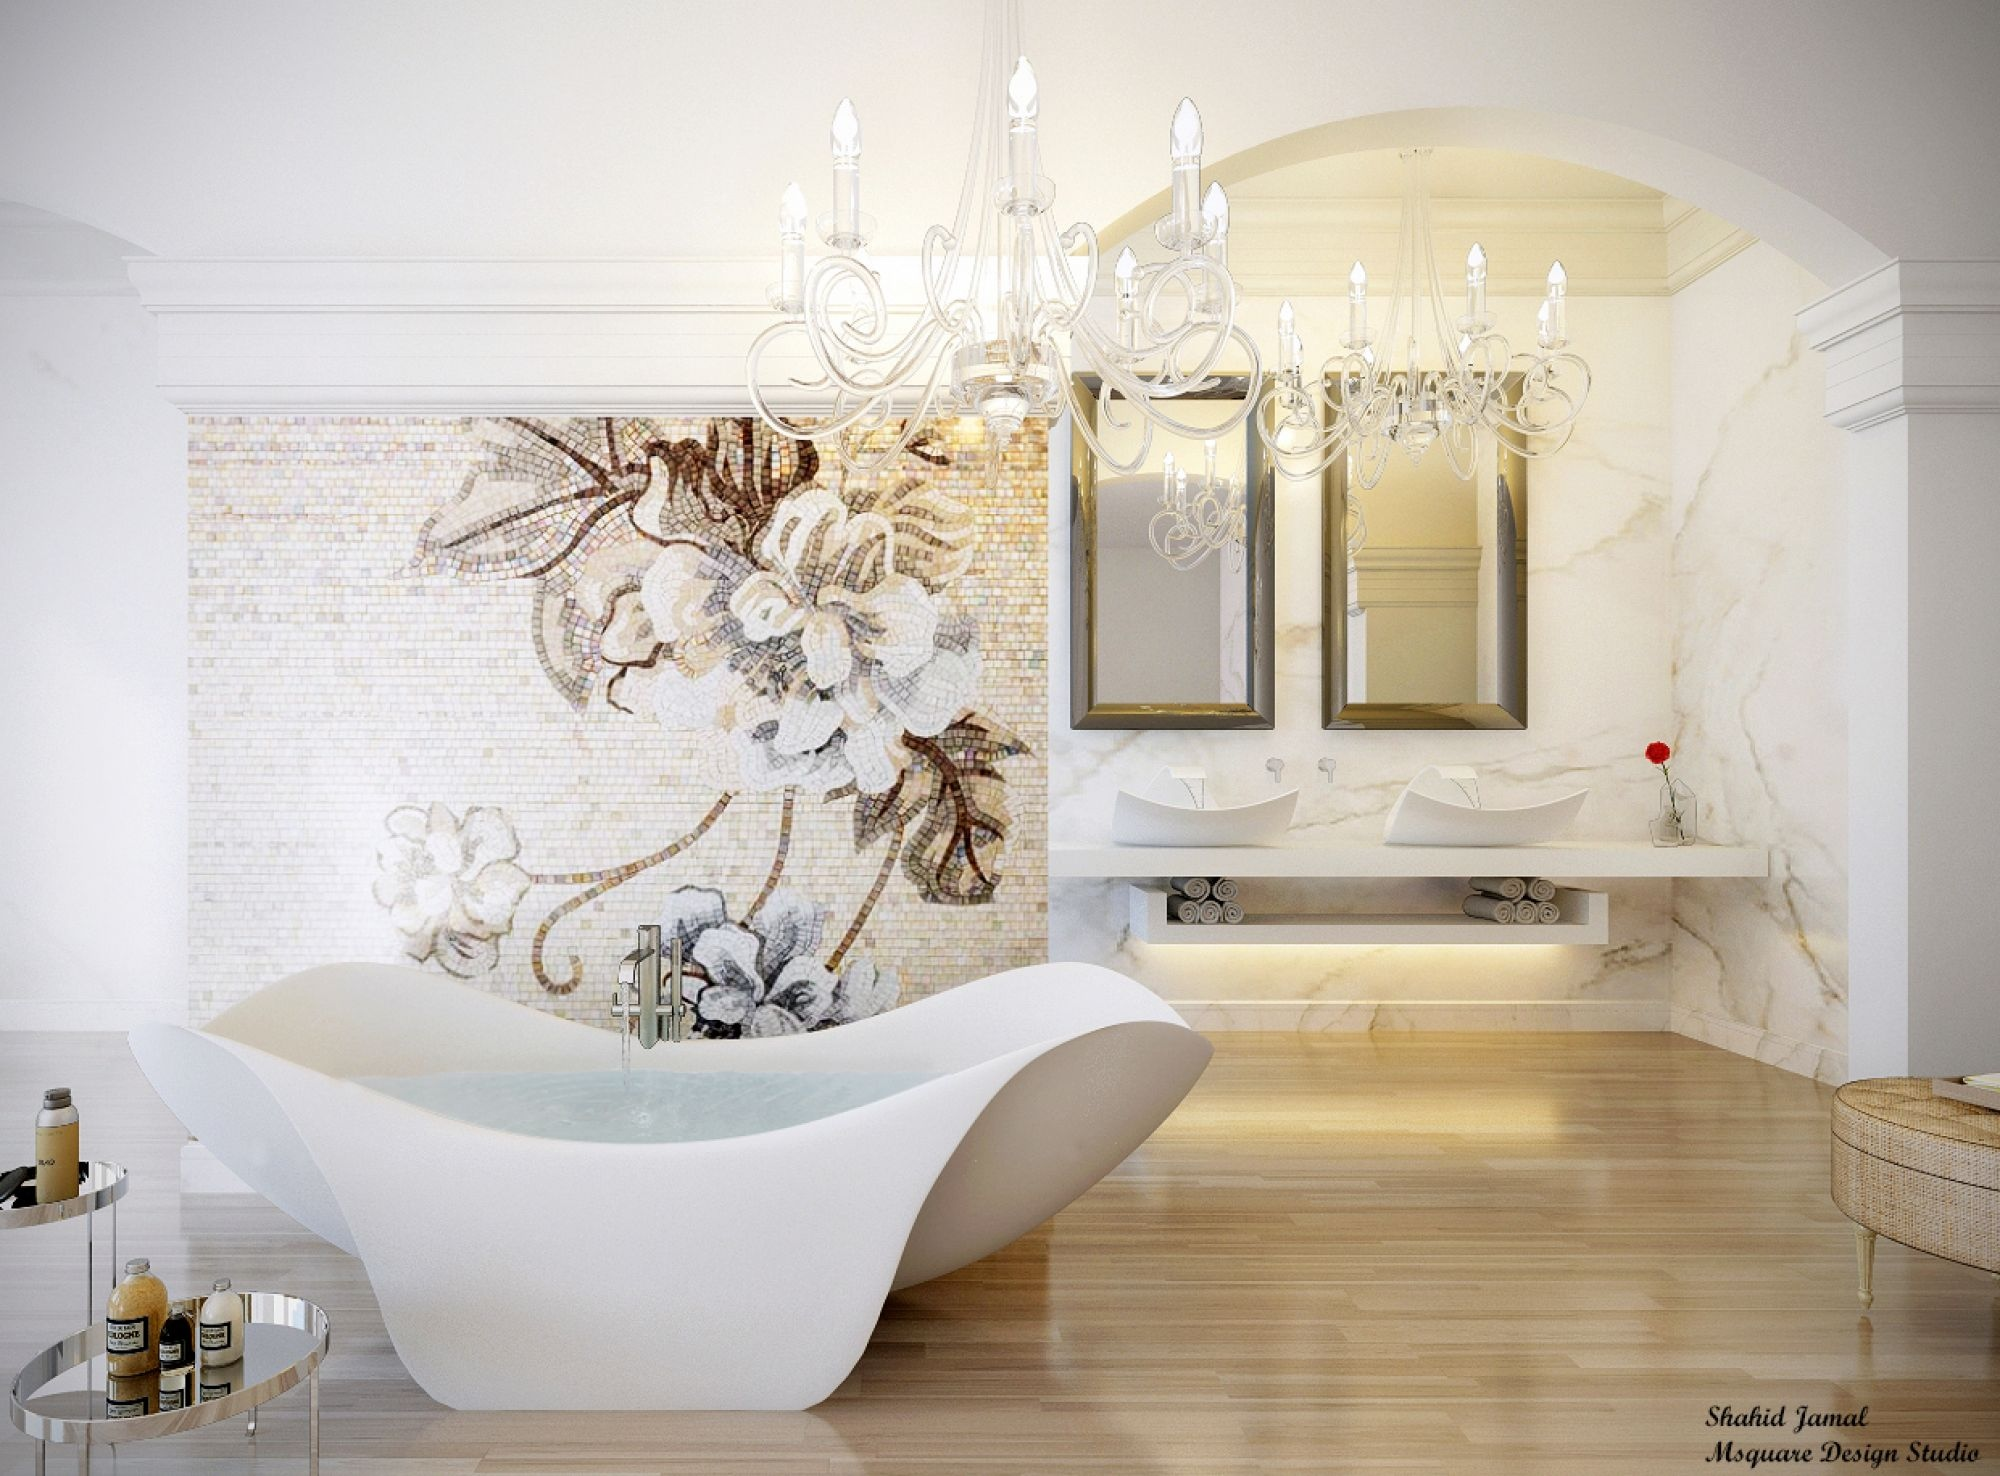 Ultra luxury bathroom inspiration for Bathroom styles 2016